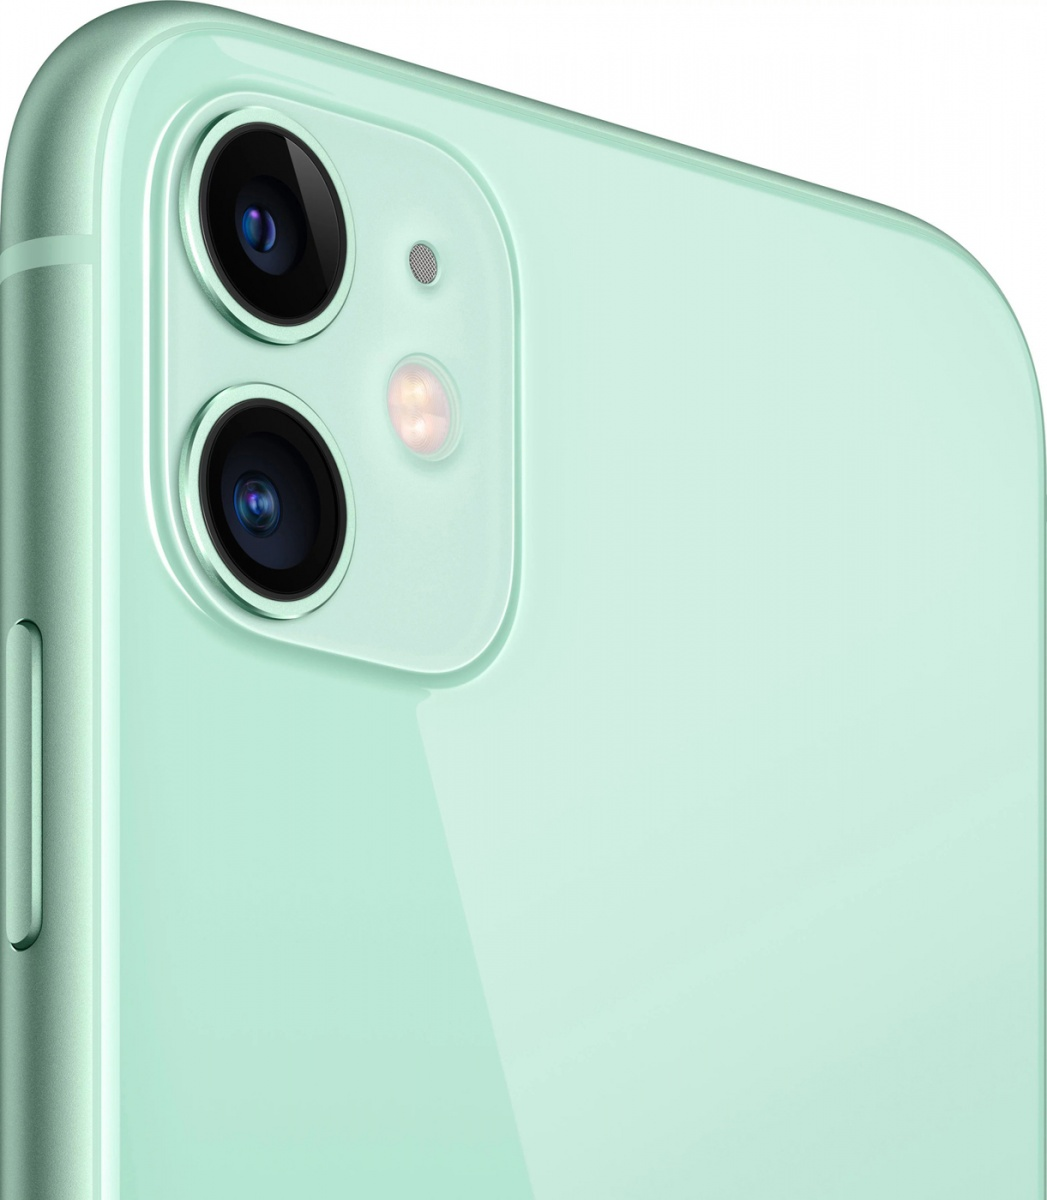 Смартфон Apple iPhone 11 Зеленый / 128 ГБ